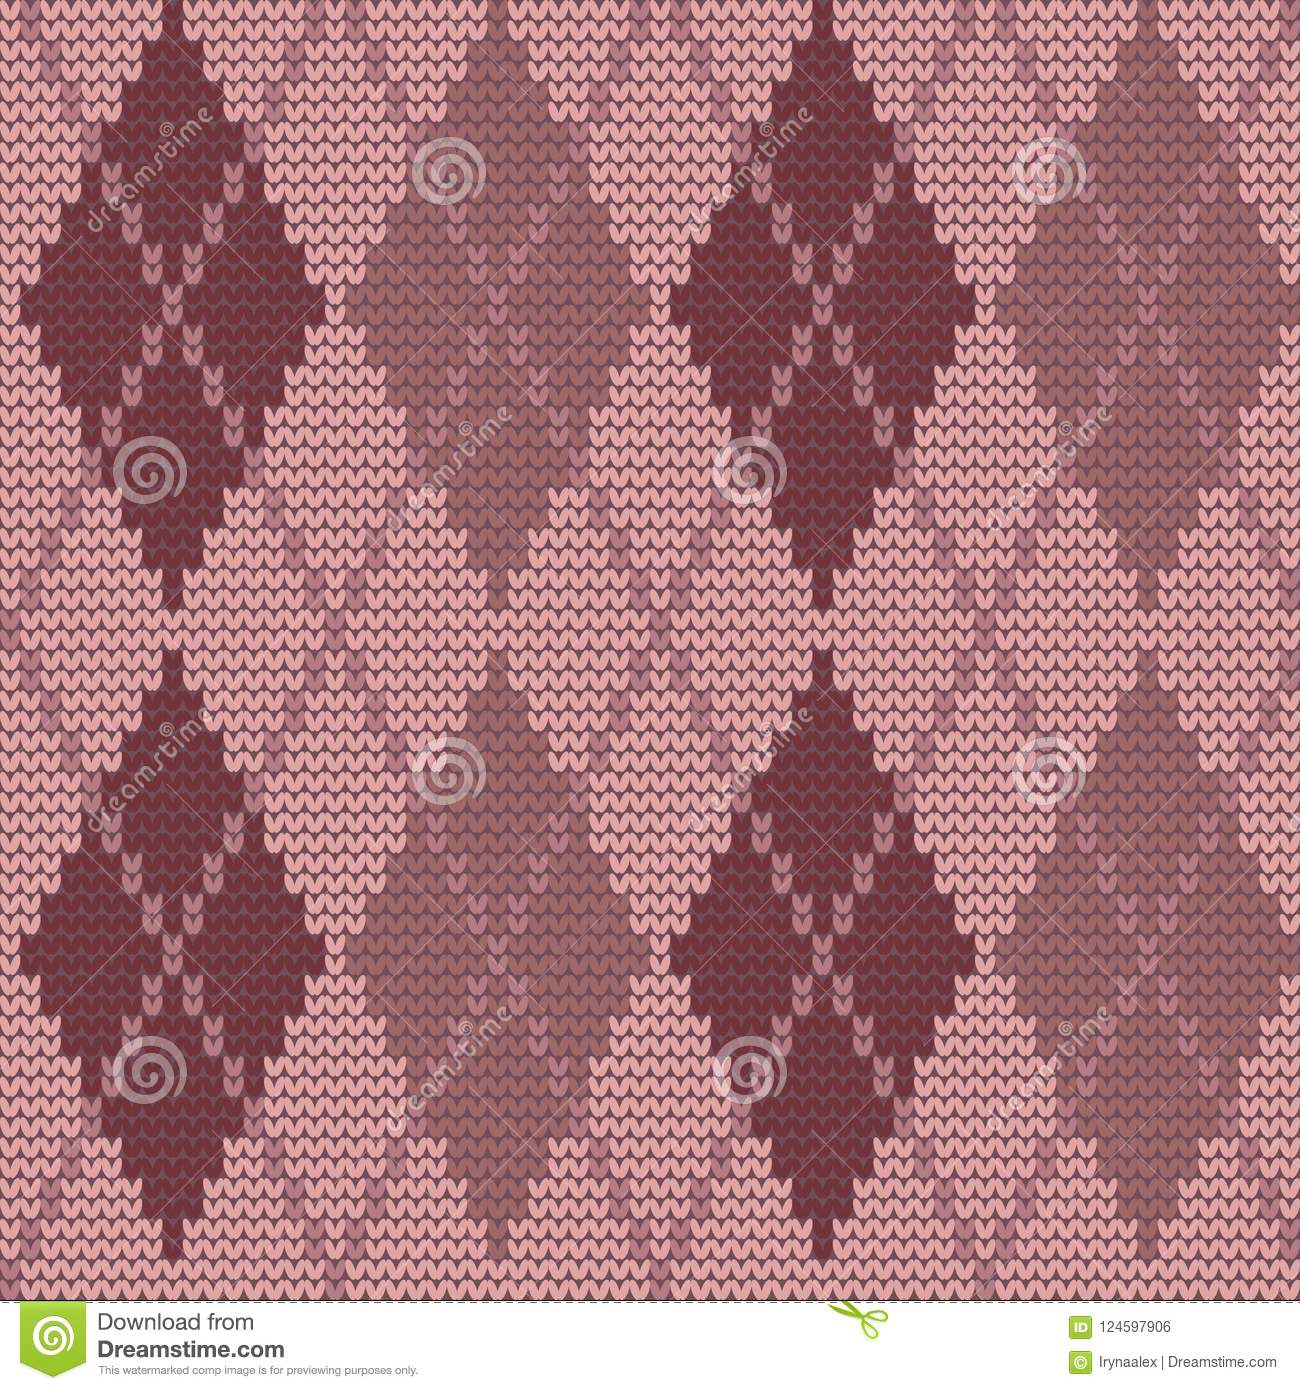 Seamless Knitted Pattern With Rhombuses. Argyle Print ...